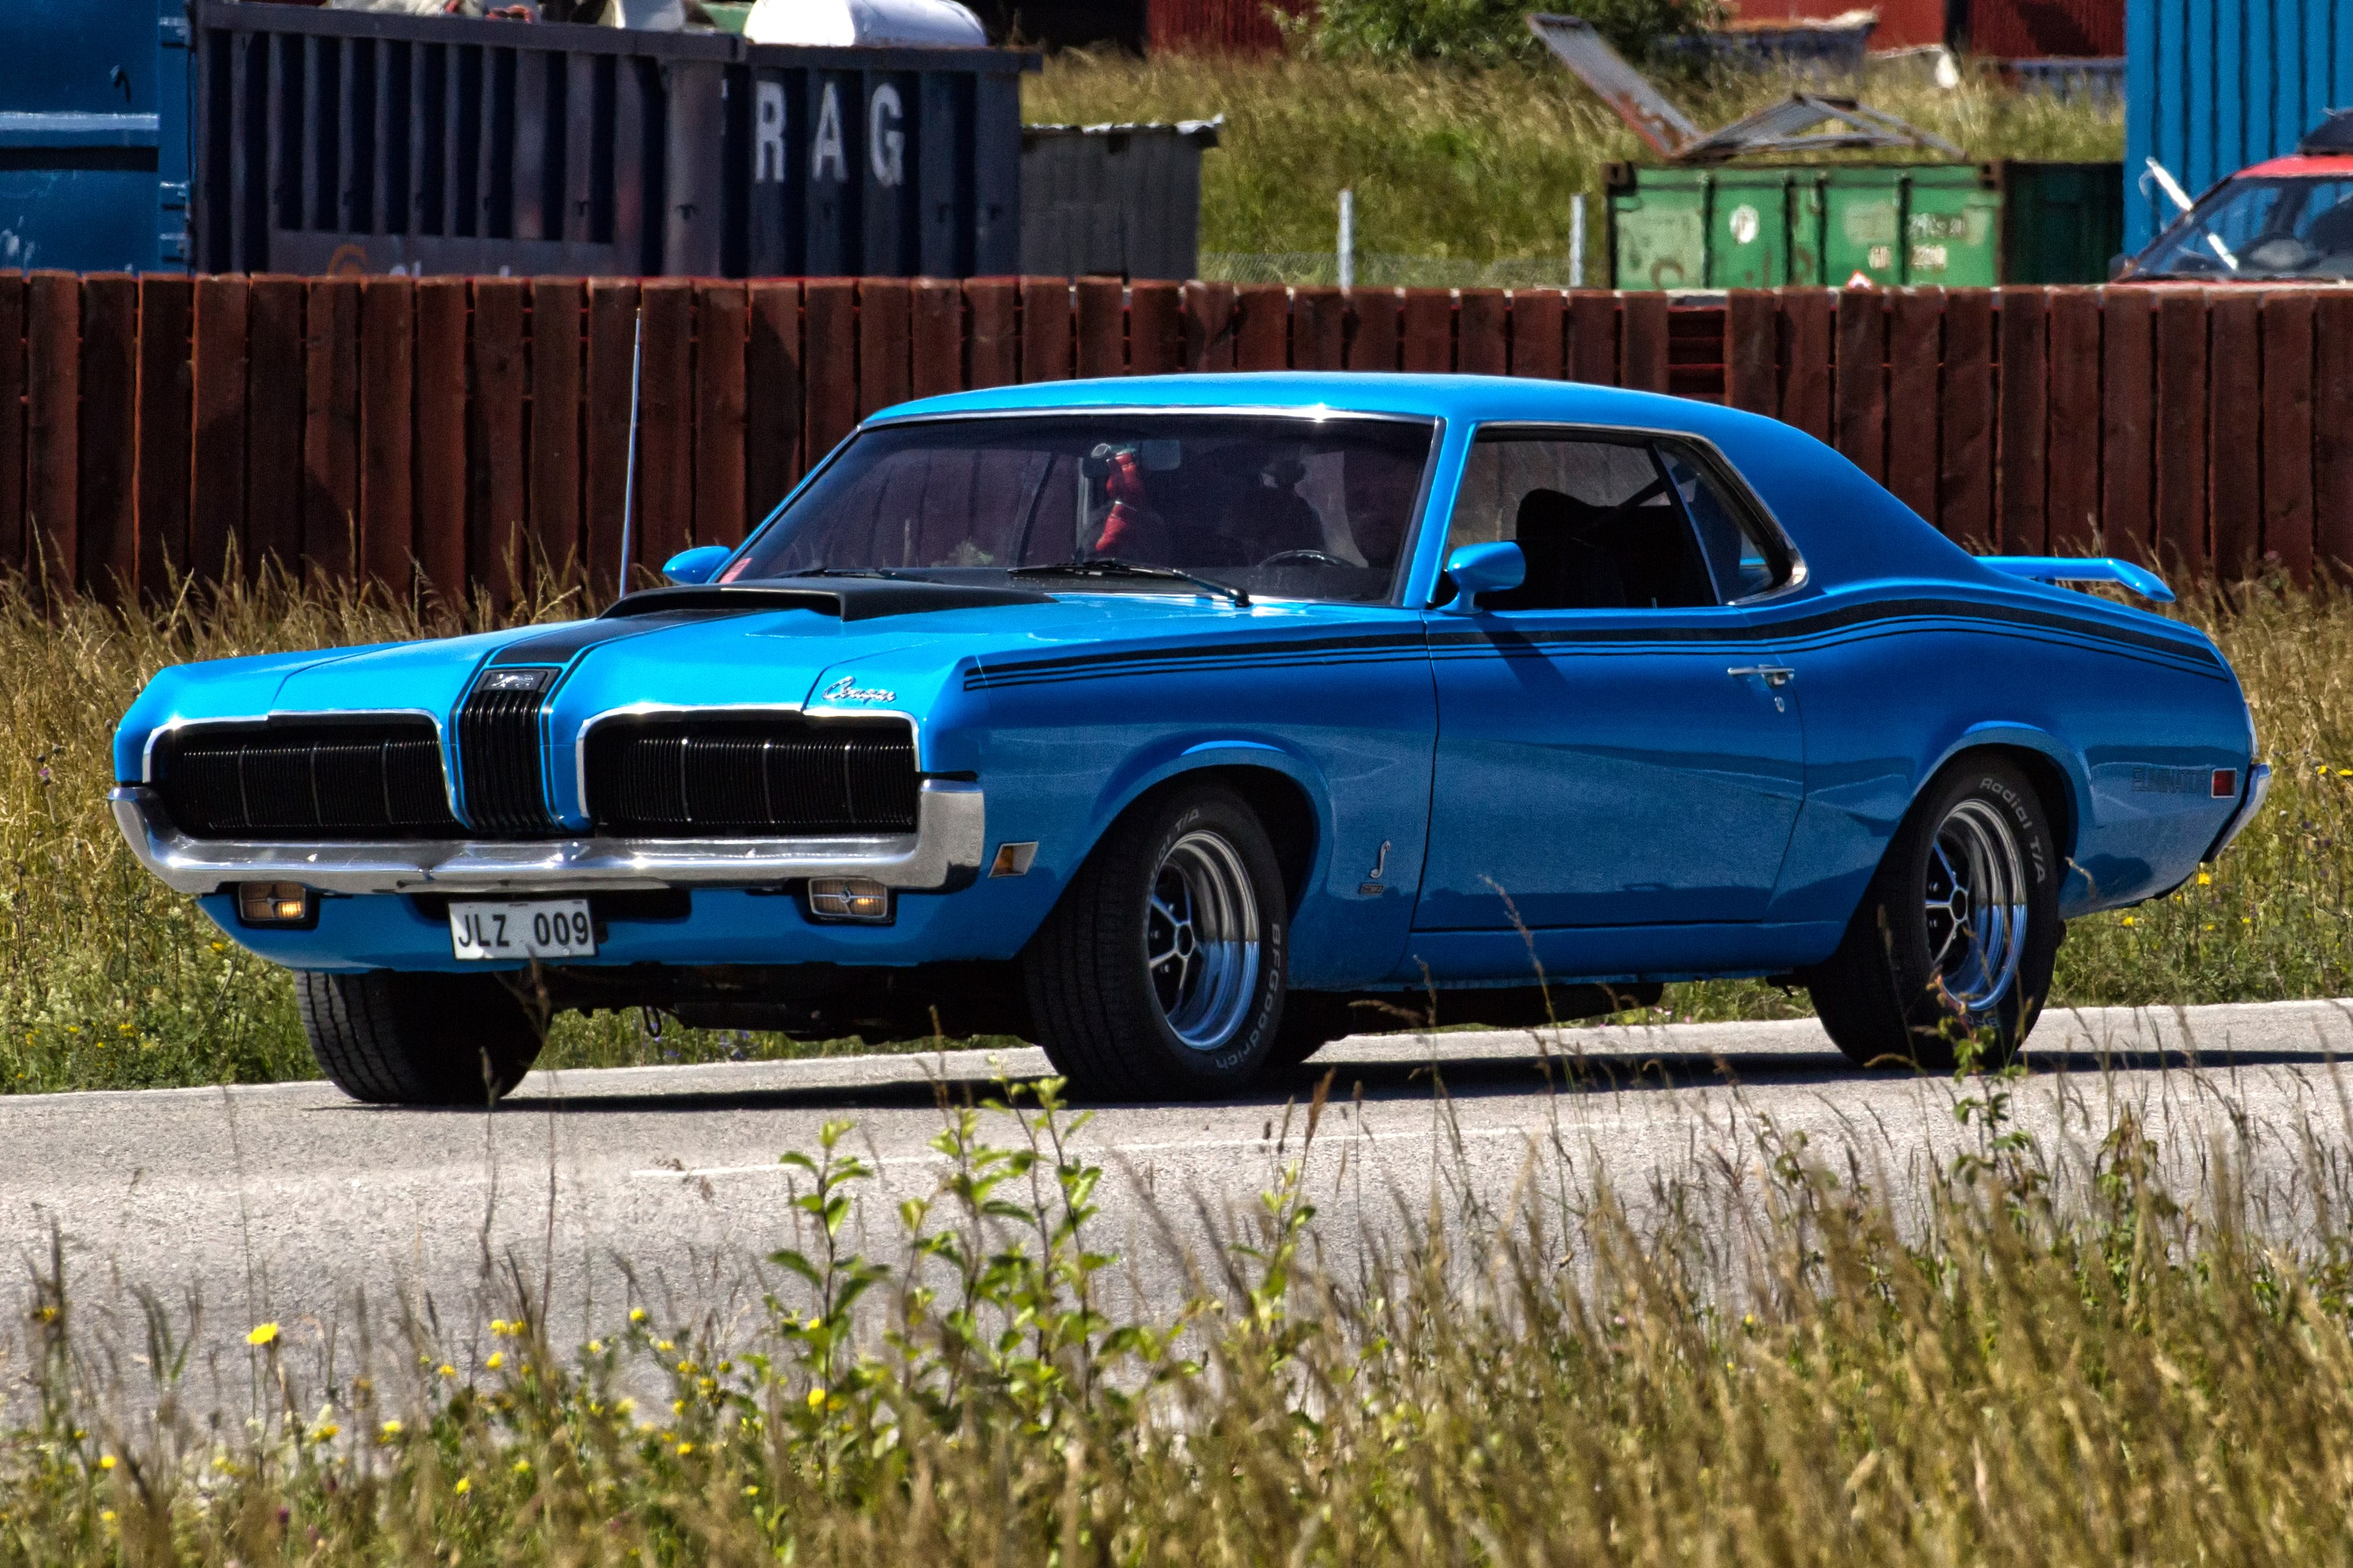 Mercury Cougar - The complete information and online sale